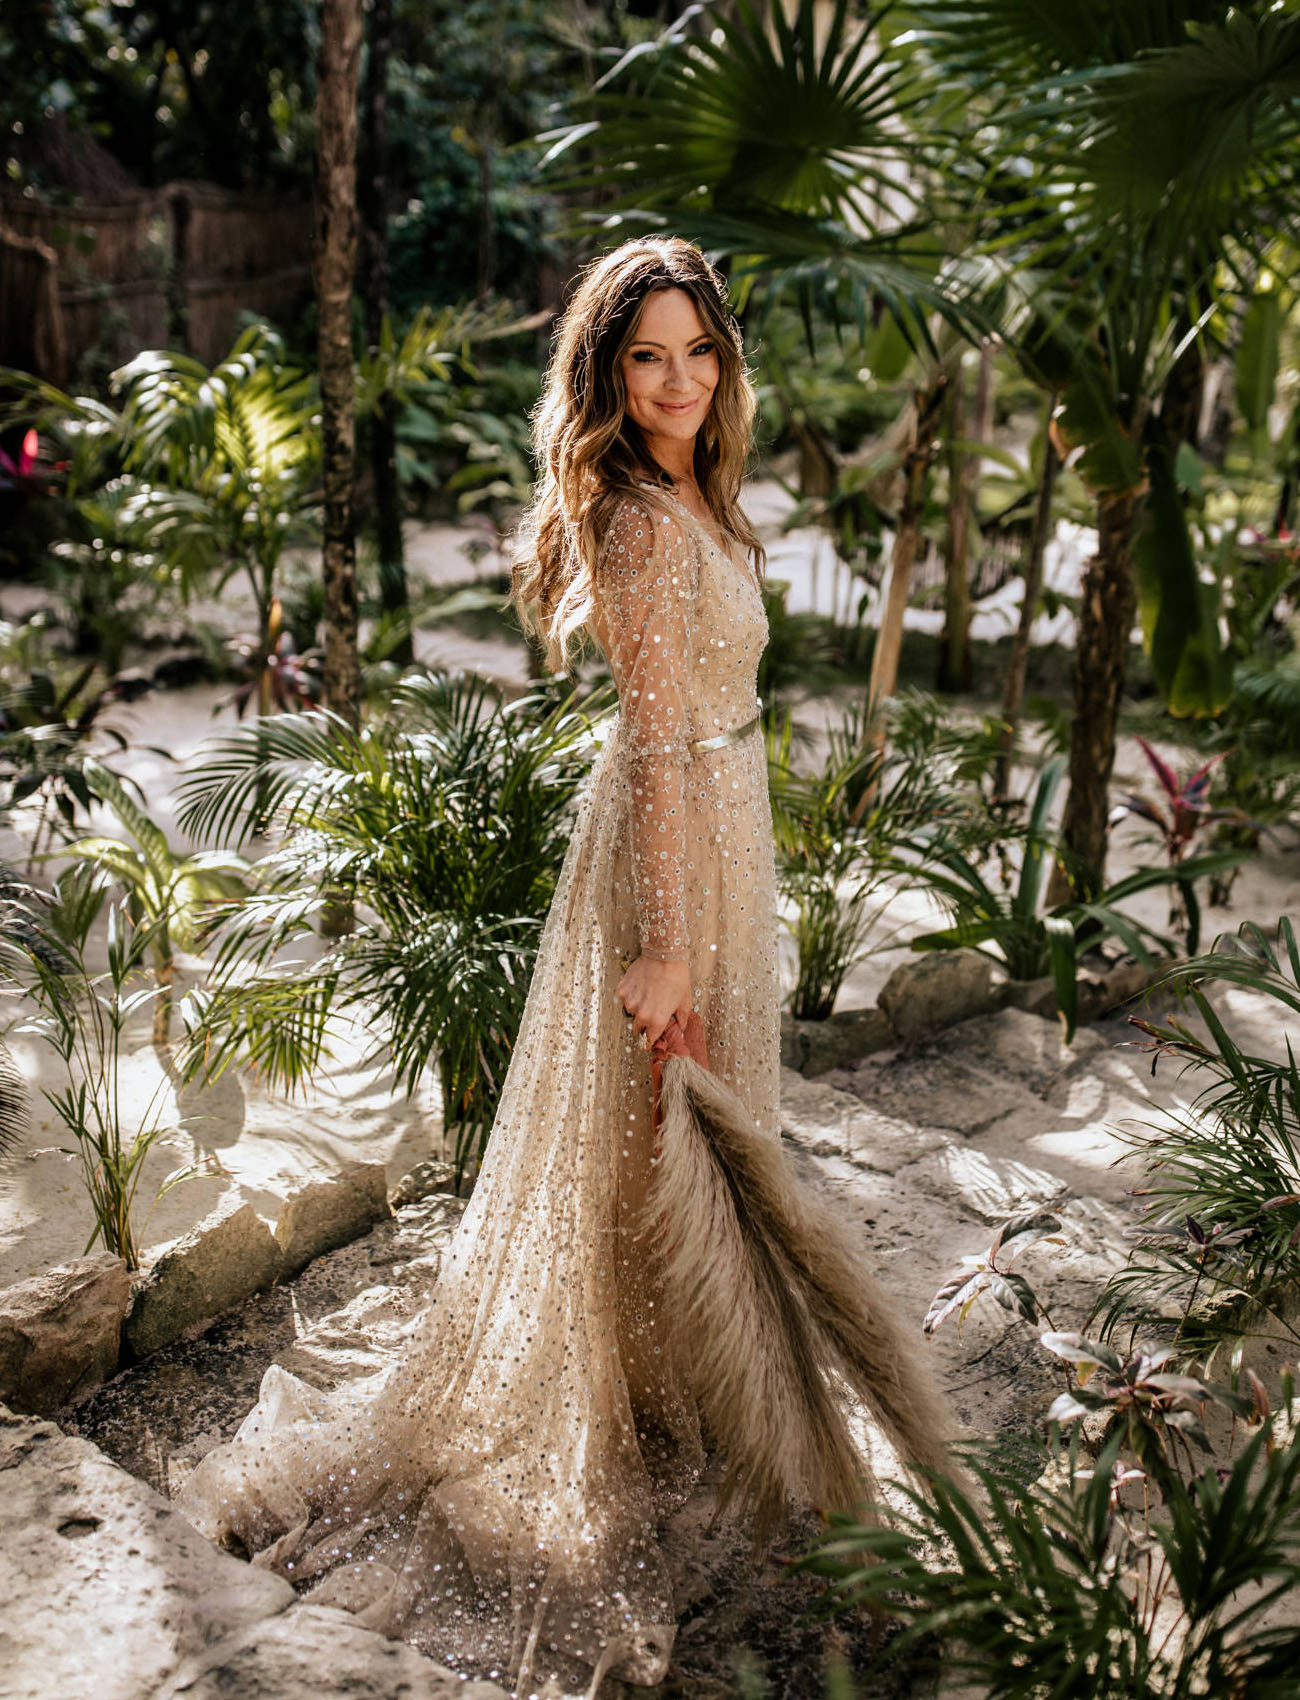 The bride was wearing a sparkling Nala wedding gown and was carrying a wedding bouquet of pampas grass